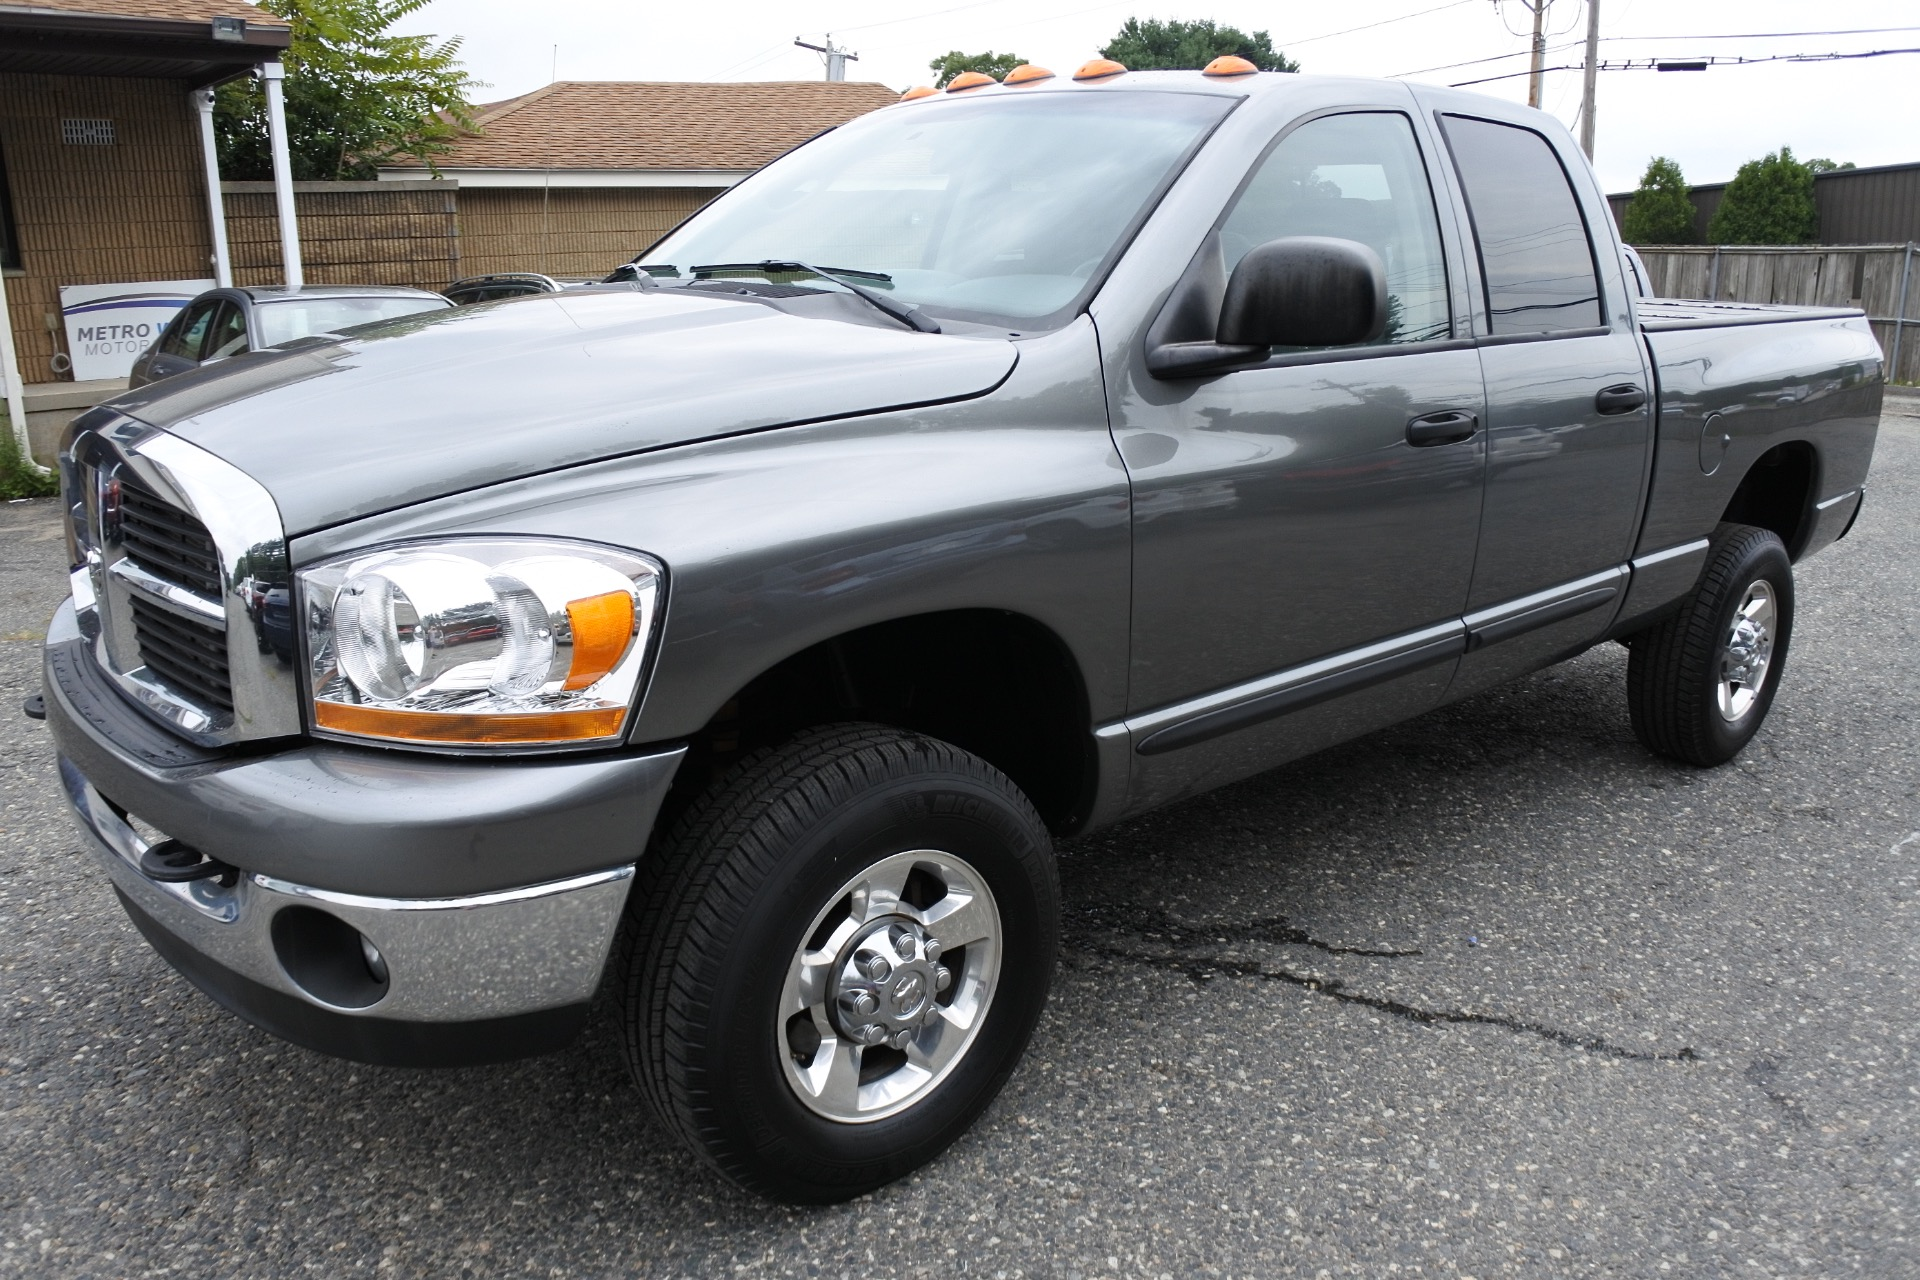 Used 2006 Dodge Ram 2500 4dr Quad Cab 140.5 4WD SLT Used 2006 Dodge Ram 2500 4dr Quad Cab 140.5 4WD SLT for sale  at Metro West Motorcars LLC in Shrewsbury MA 1